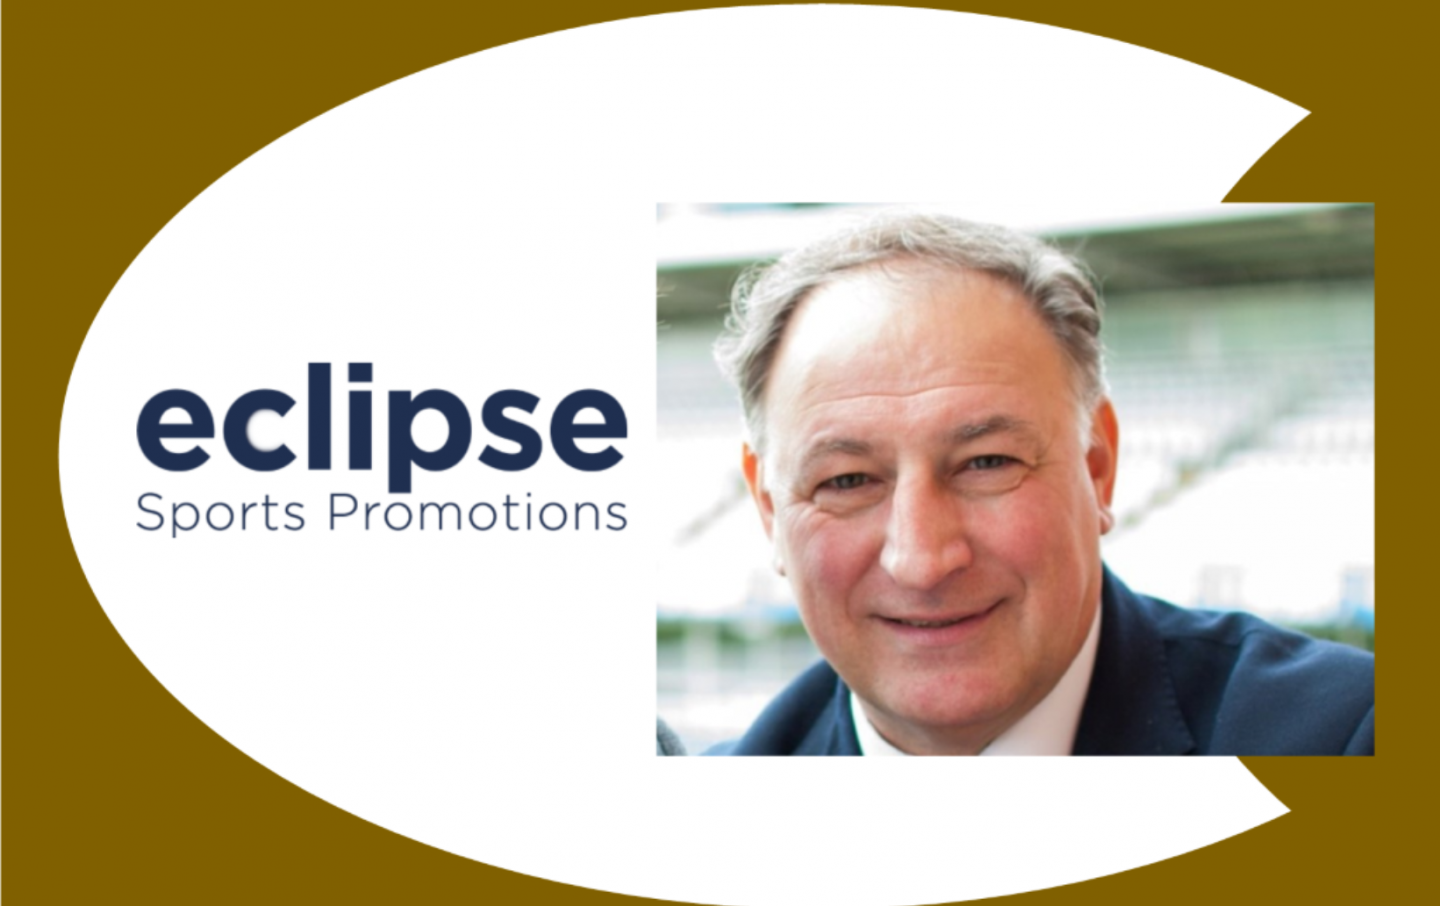 Steve Surridge - Eclipse Sports Working with Sporting Legends